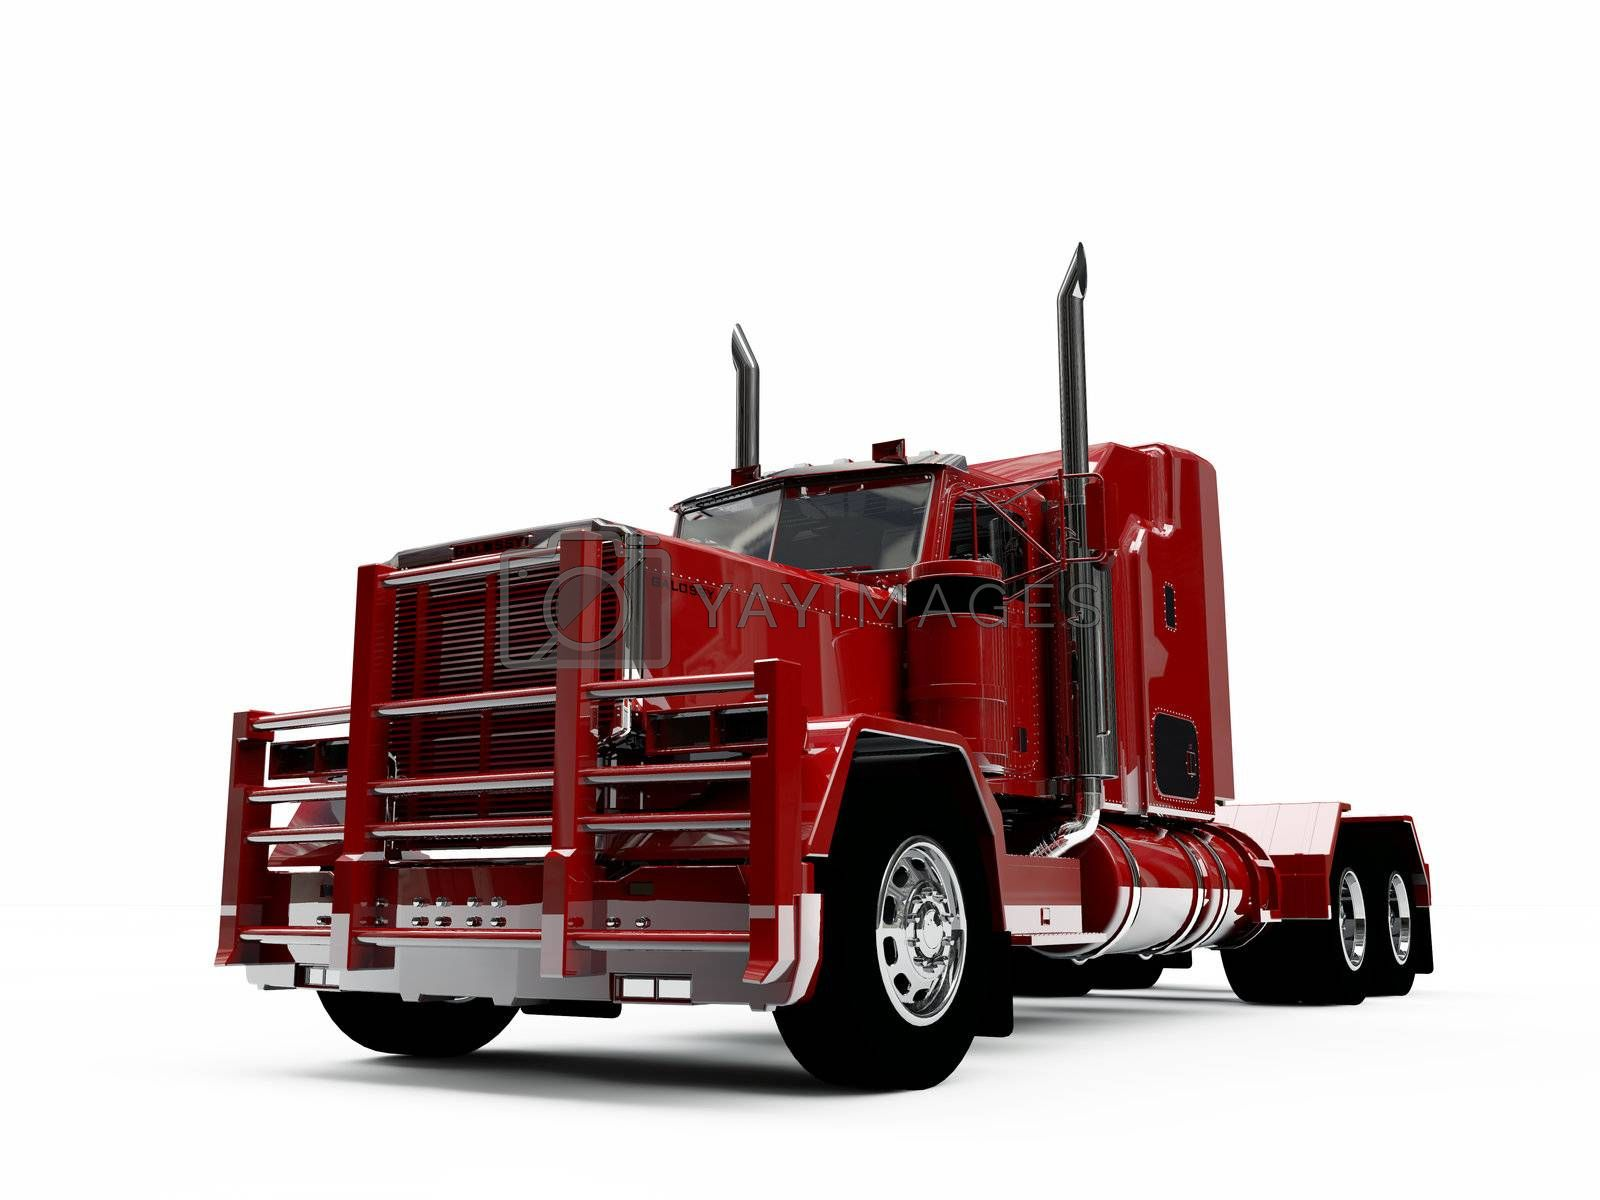 american truck by lamianuovasupermail@gmail.com